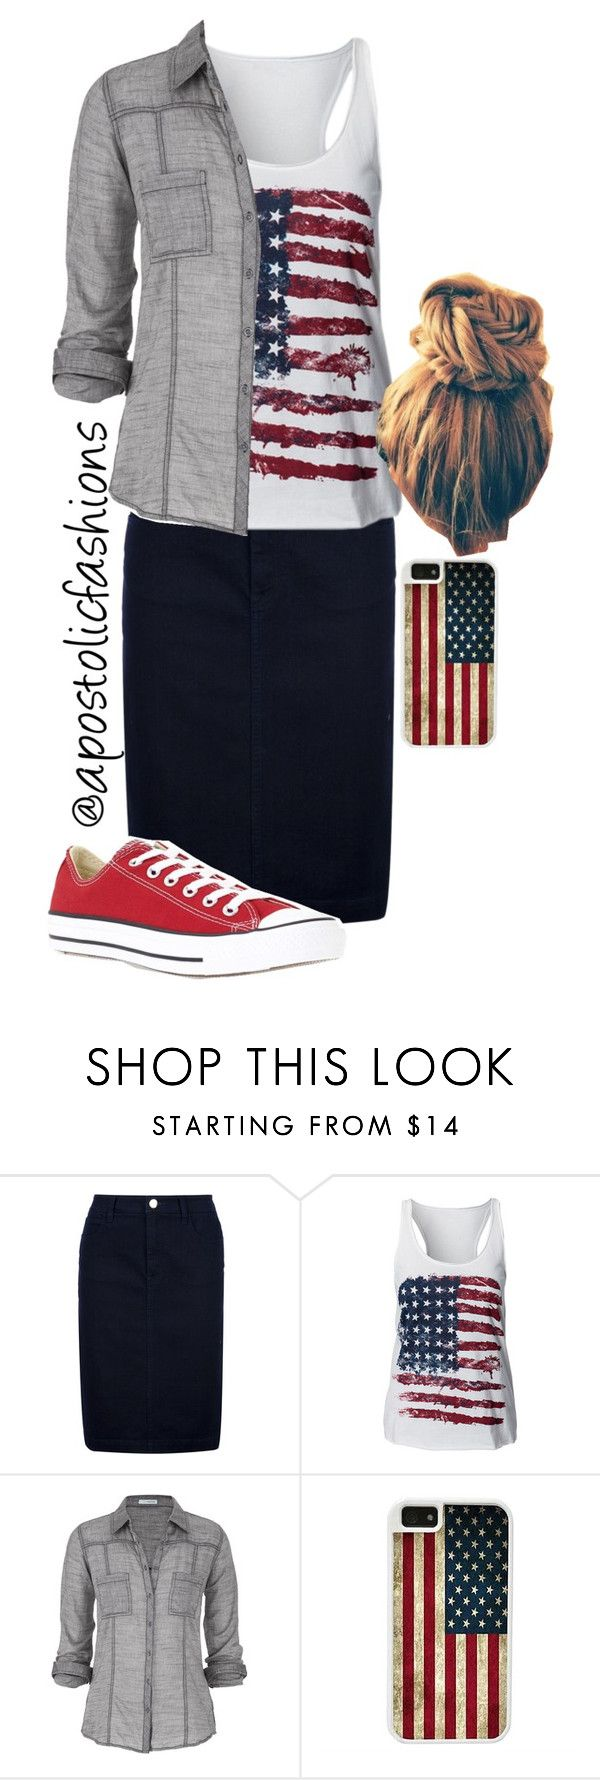 """Apostolic Fashions #659"" by apostolicfashions ❤ liked on Polyvore featuring Burberry, maurices, Converse and CellPowerCases"